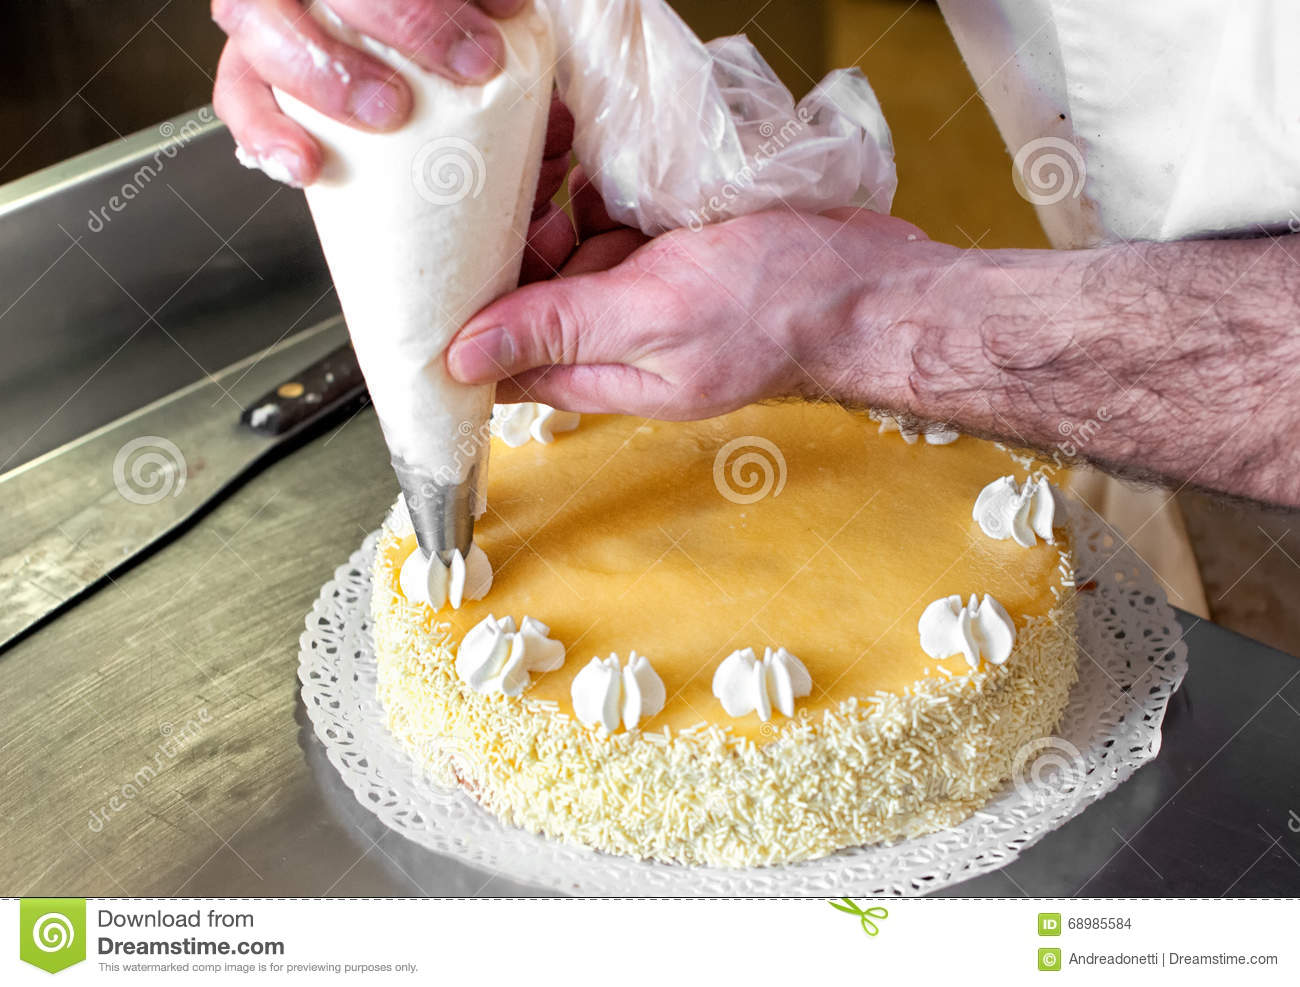 Cake Decorating Stock Images : Baker Piping Cream Decorations On A Cake Stock Photo ...